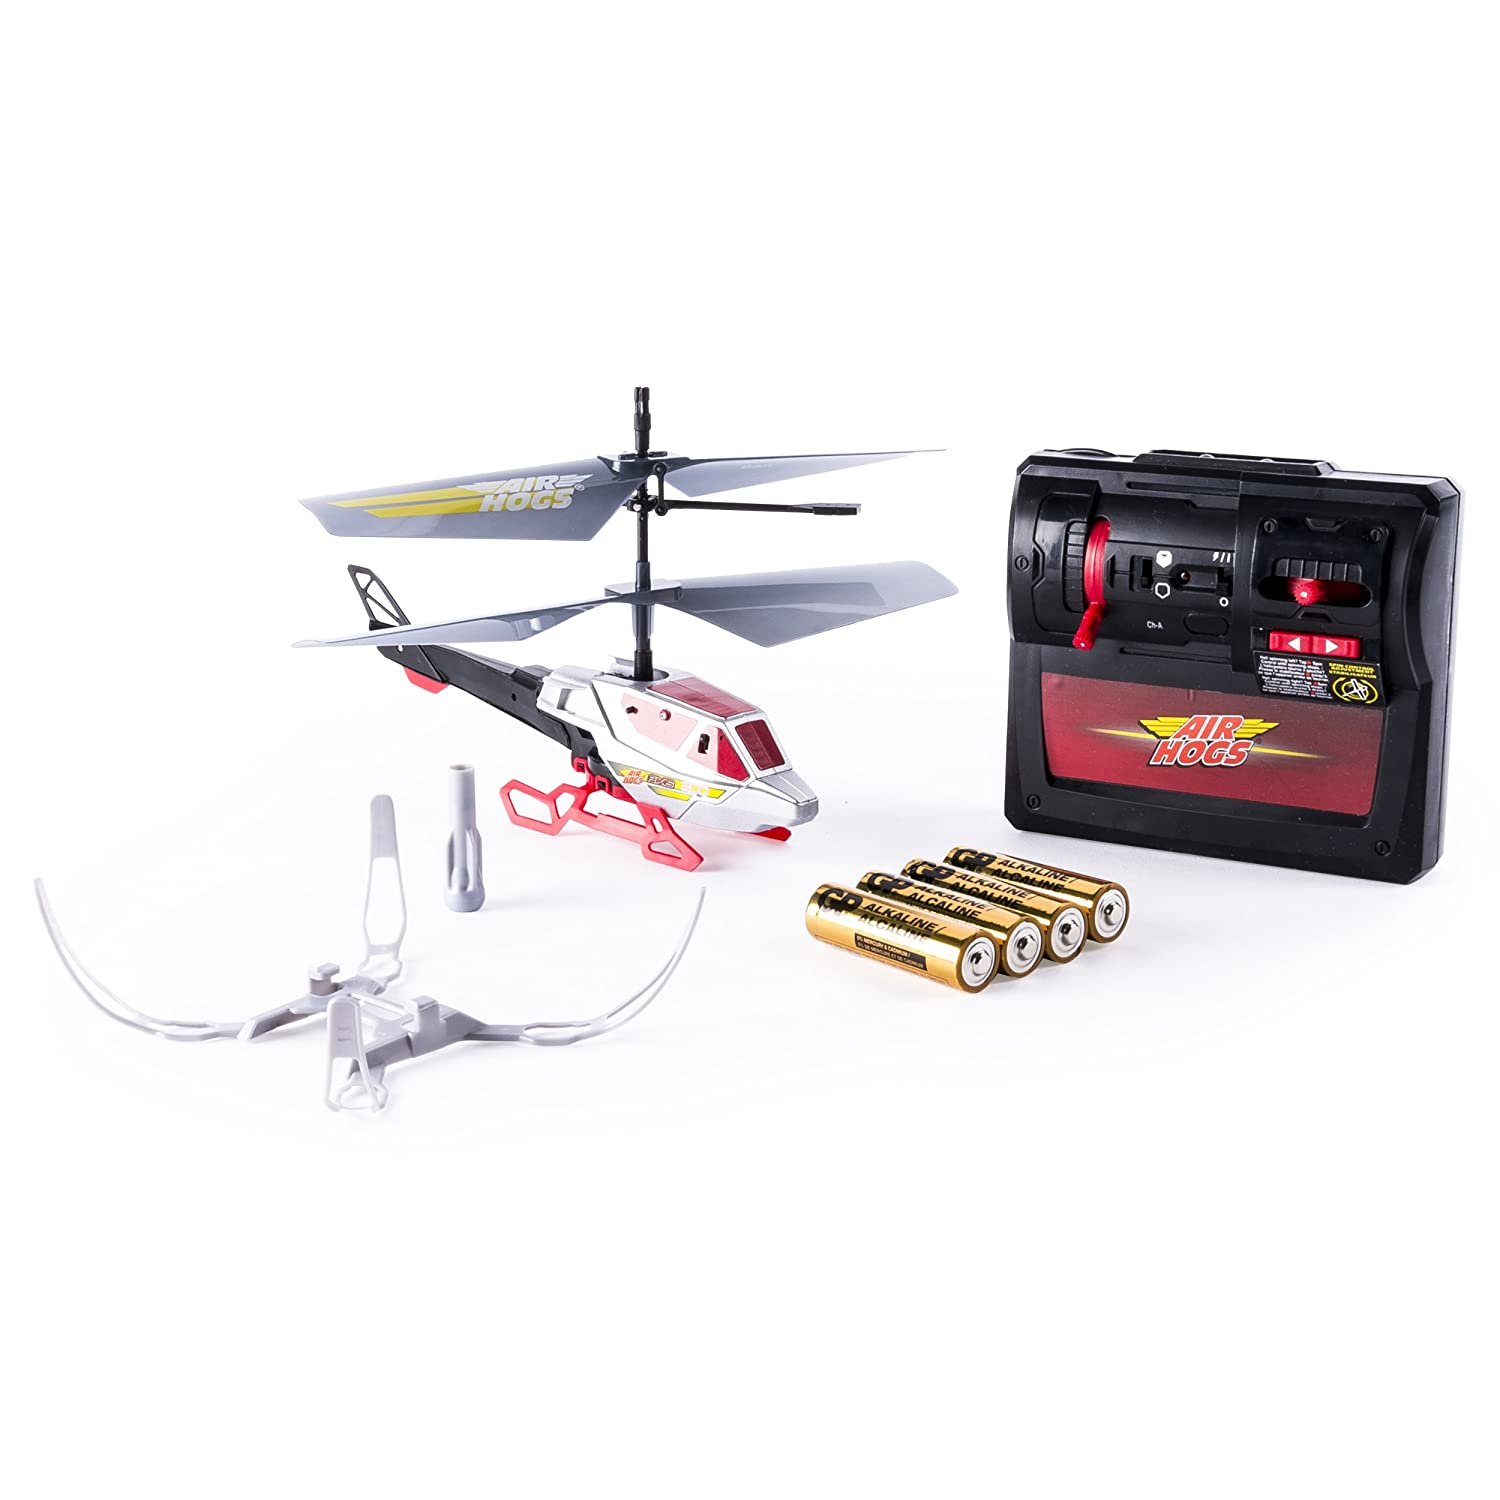 Air Hogs Axis 200 Rc Helicopter With Batteries Red Garage Wire Diagram Ride Toys Games